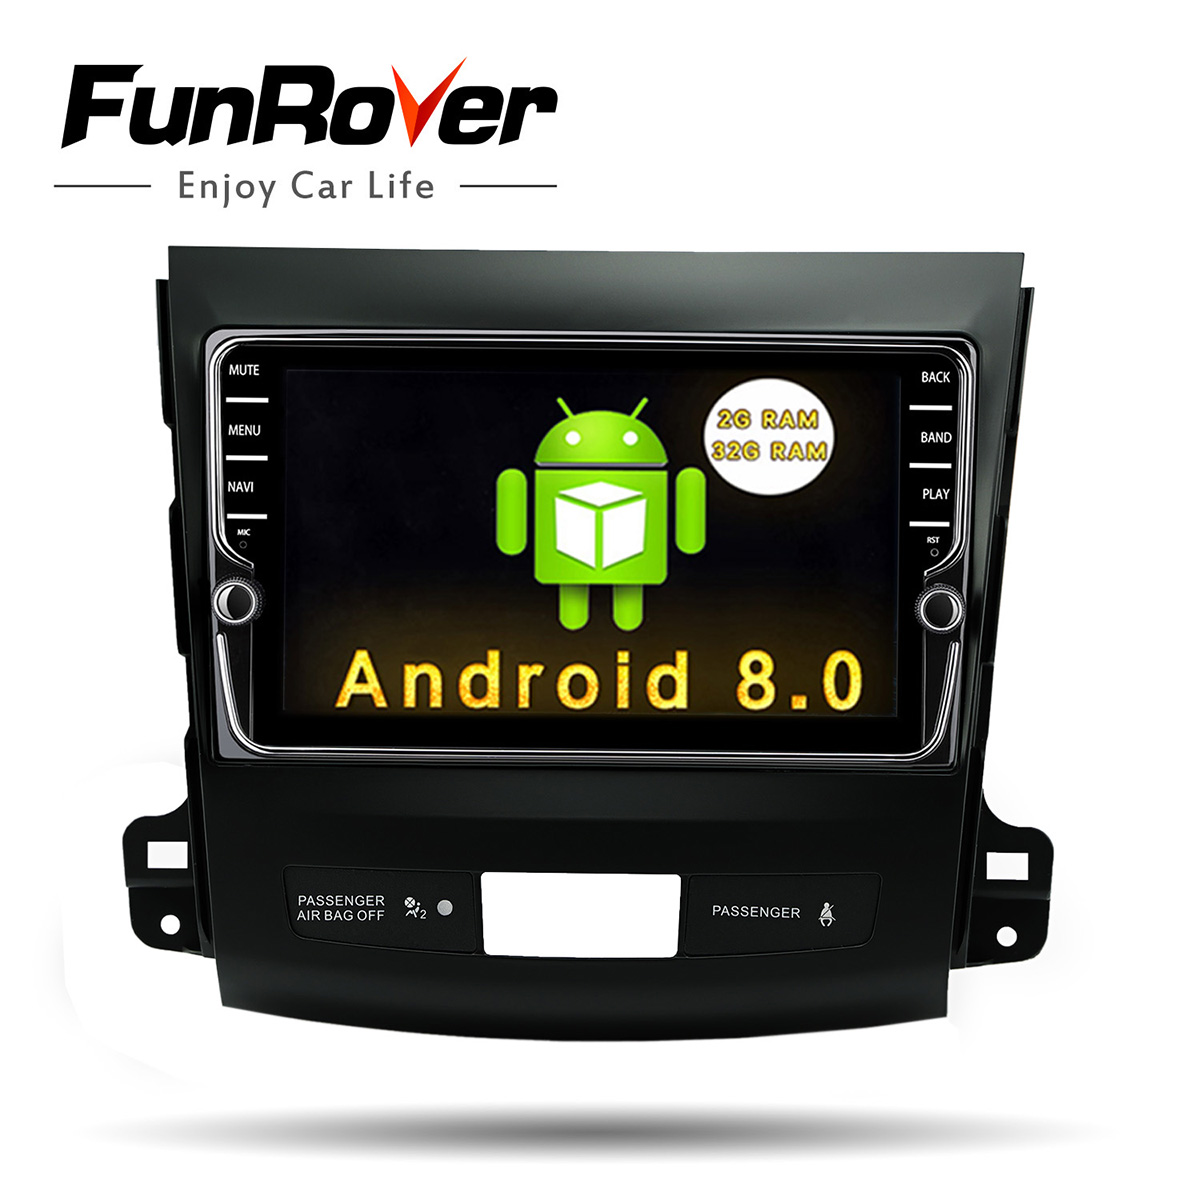 Funrover IPS 8 Android 8.0 Car GPS navi tape recorder for Mitsubishi Outlander 2006-2014 Peugeot 4007 Citroen C-Crosser BT wifi